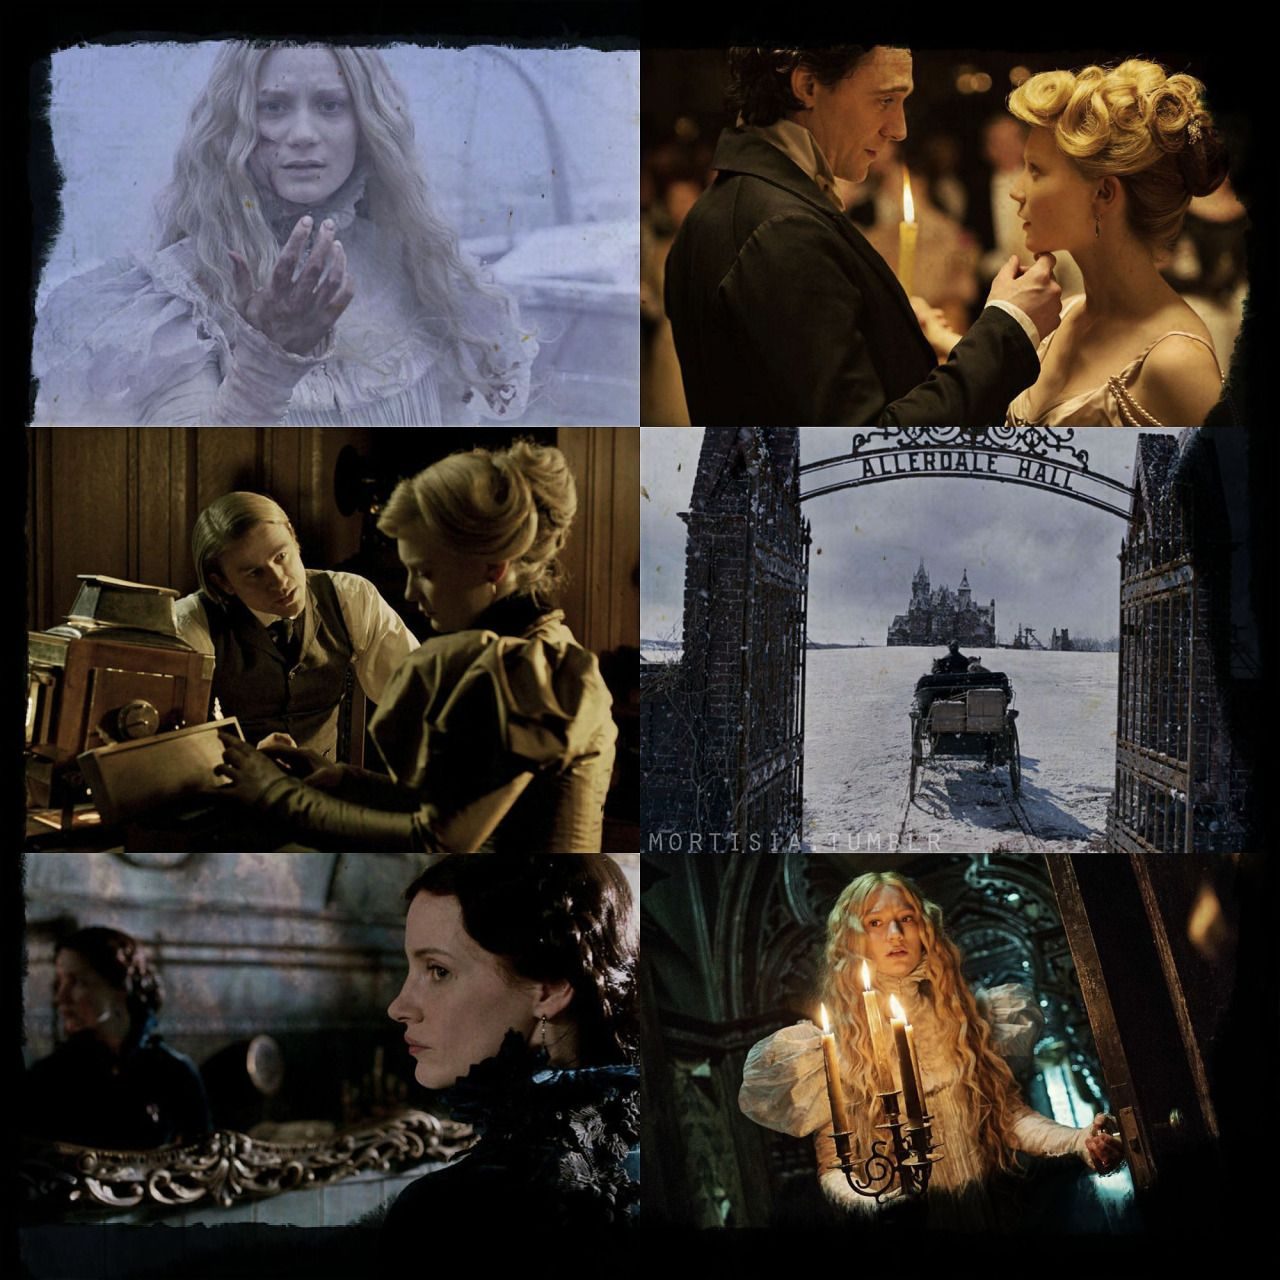 Crimson Peak (2015) In the aftermath of a family tragedy, an aspiring author is torn between love for her childhood friend and the temptation of a mysterious outsider. Trying to escape the ghosts of...